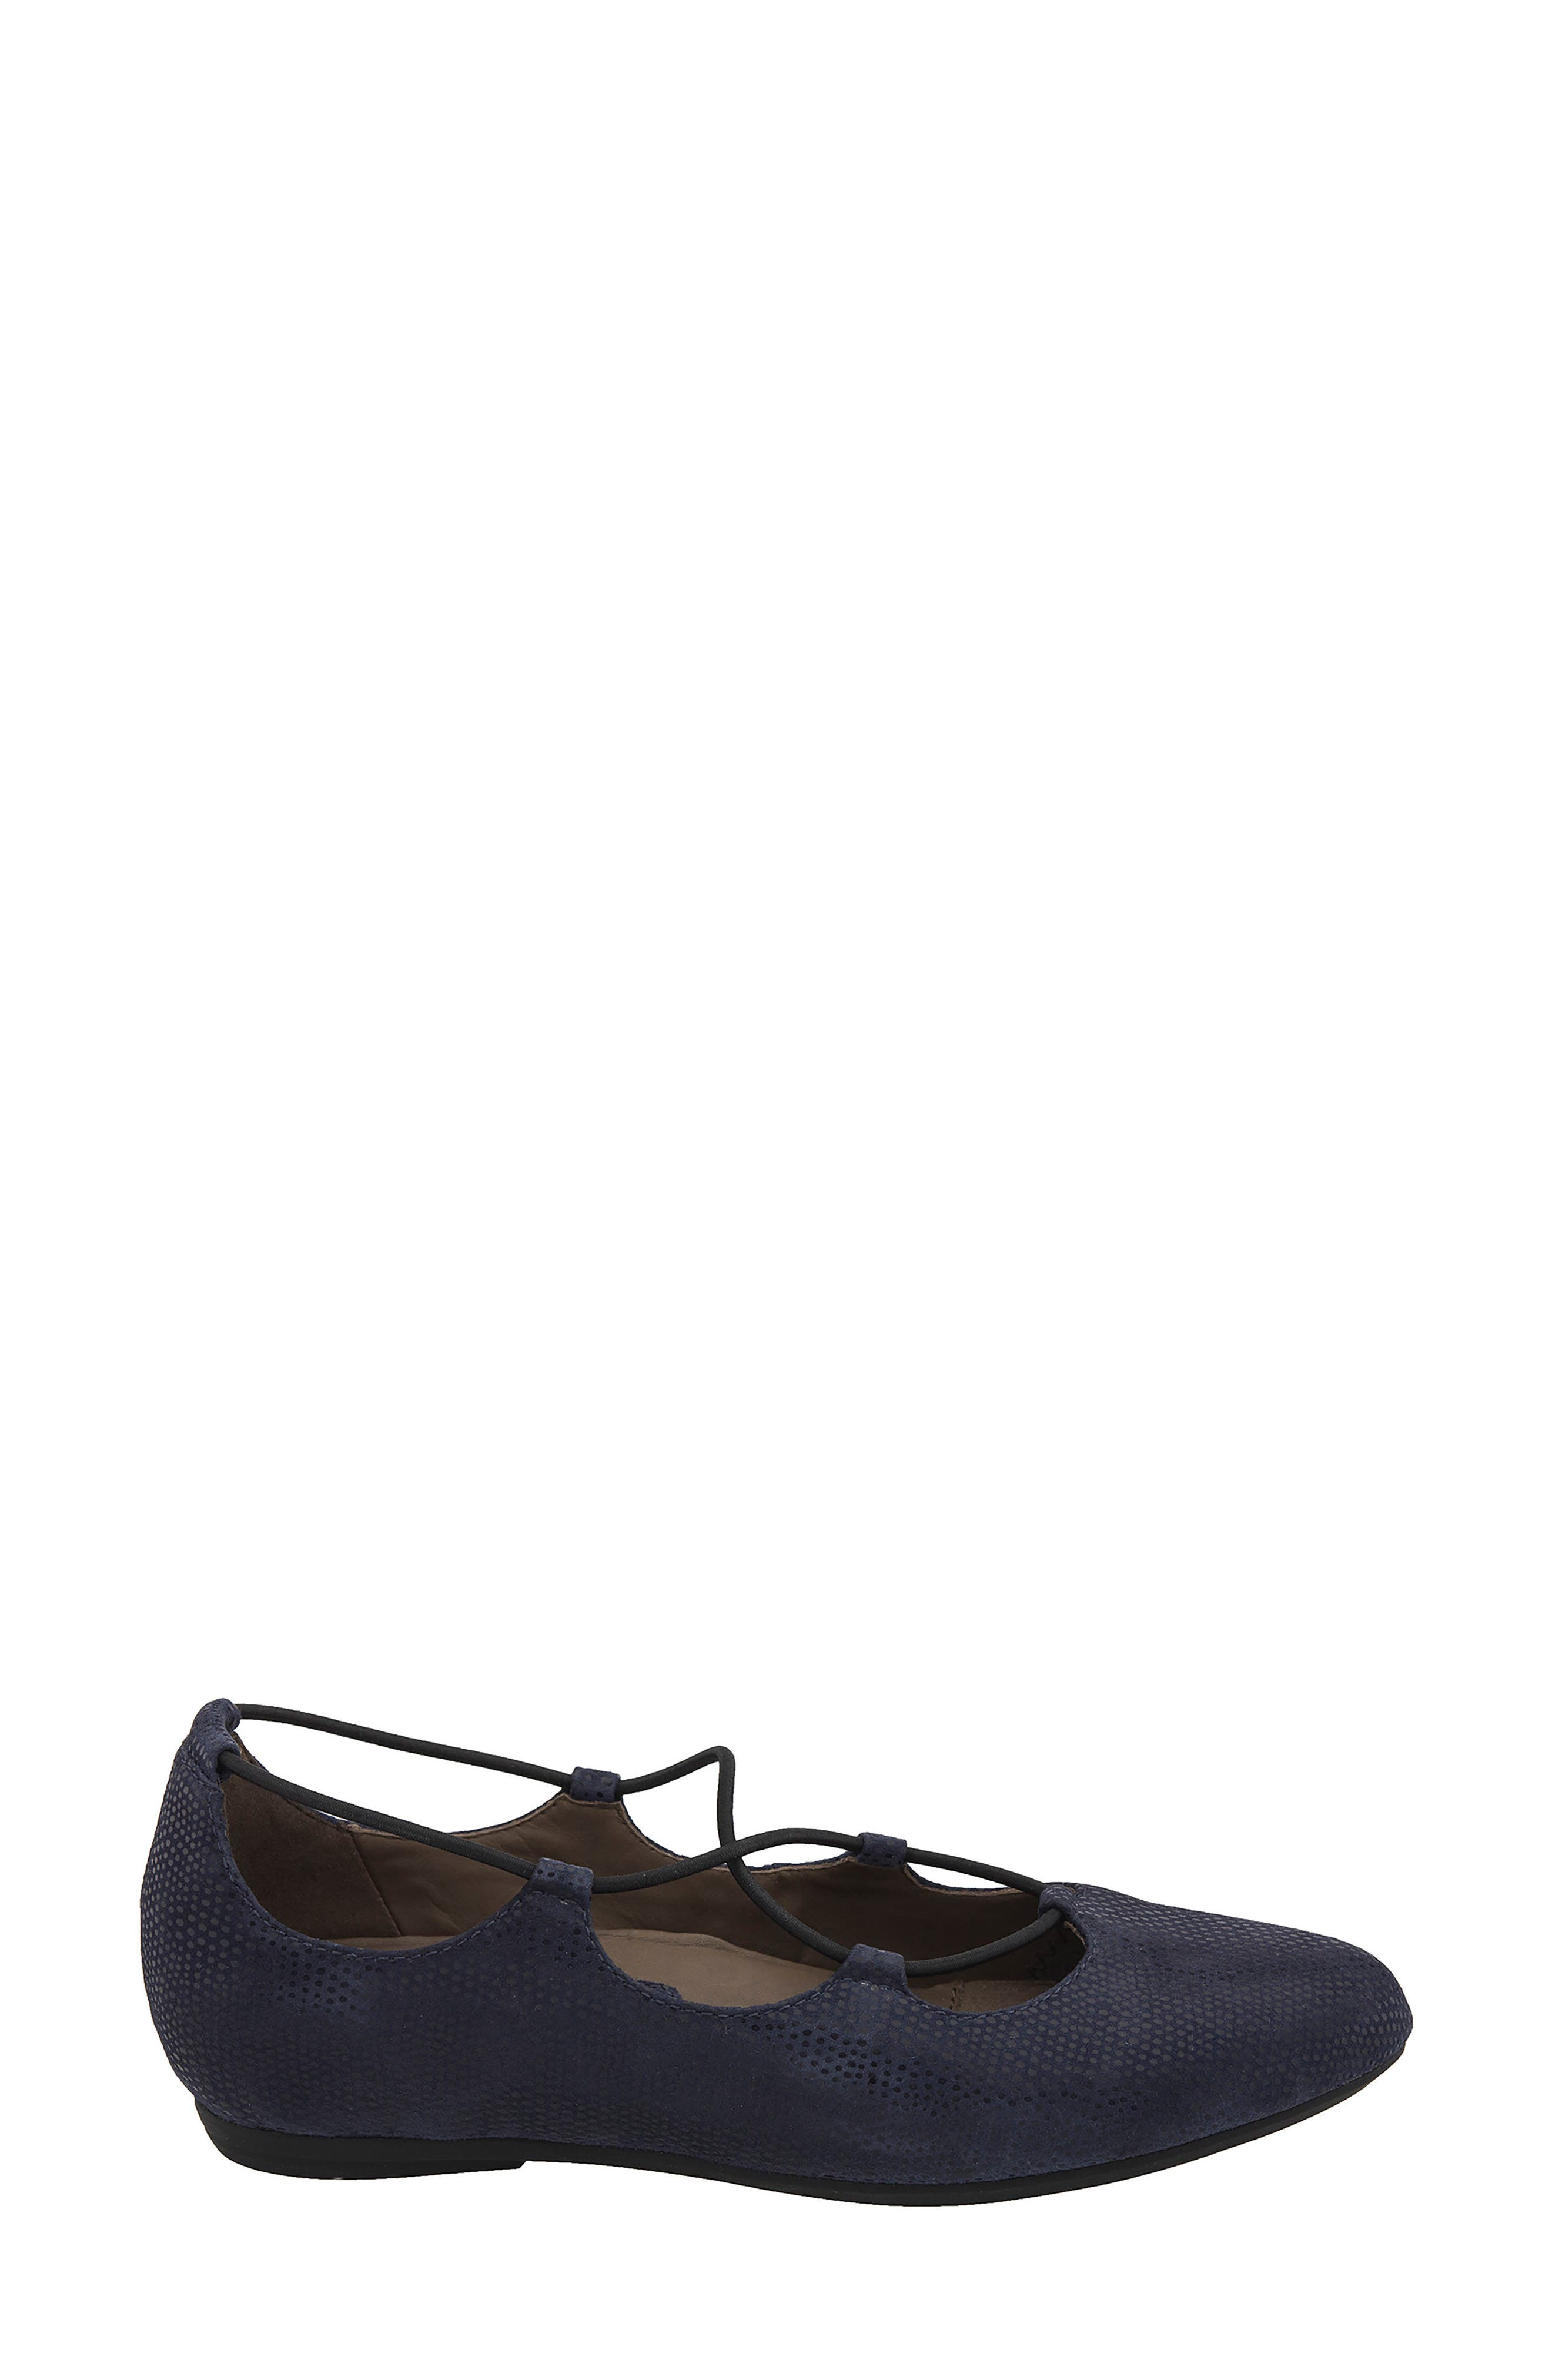 'Essen' Ghillie Flat,                             Alternate thumbnail 4, color,                             Navy Printed Suede